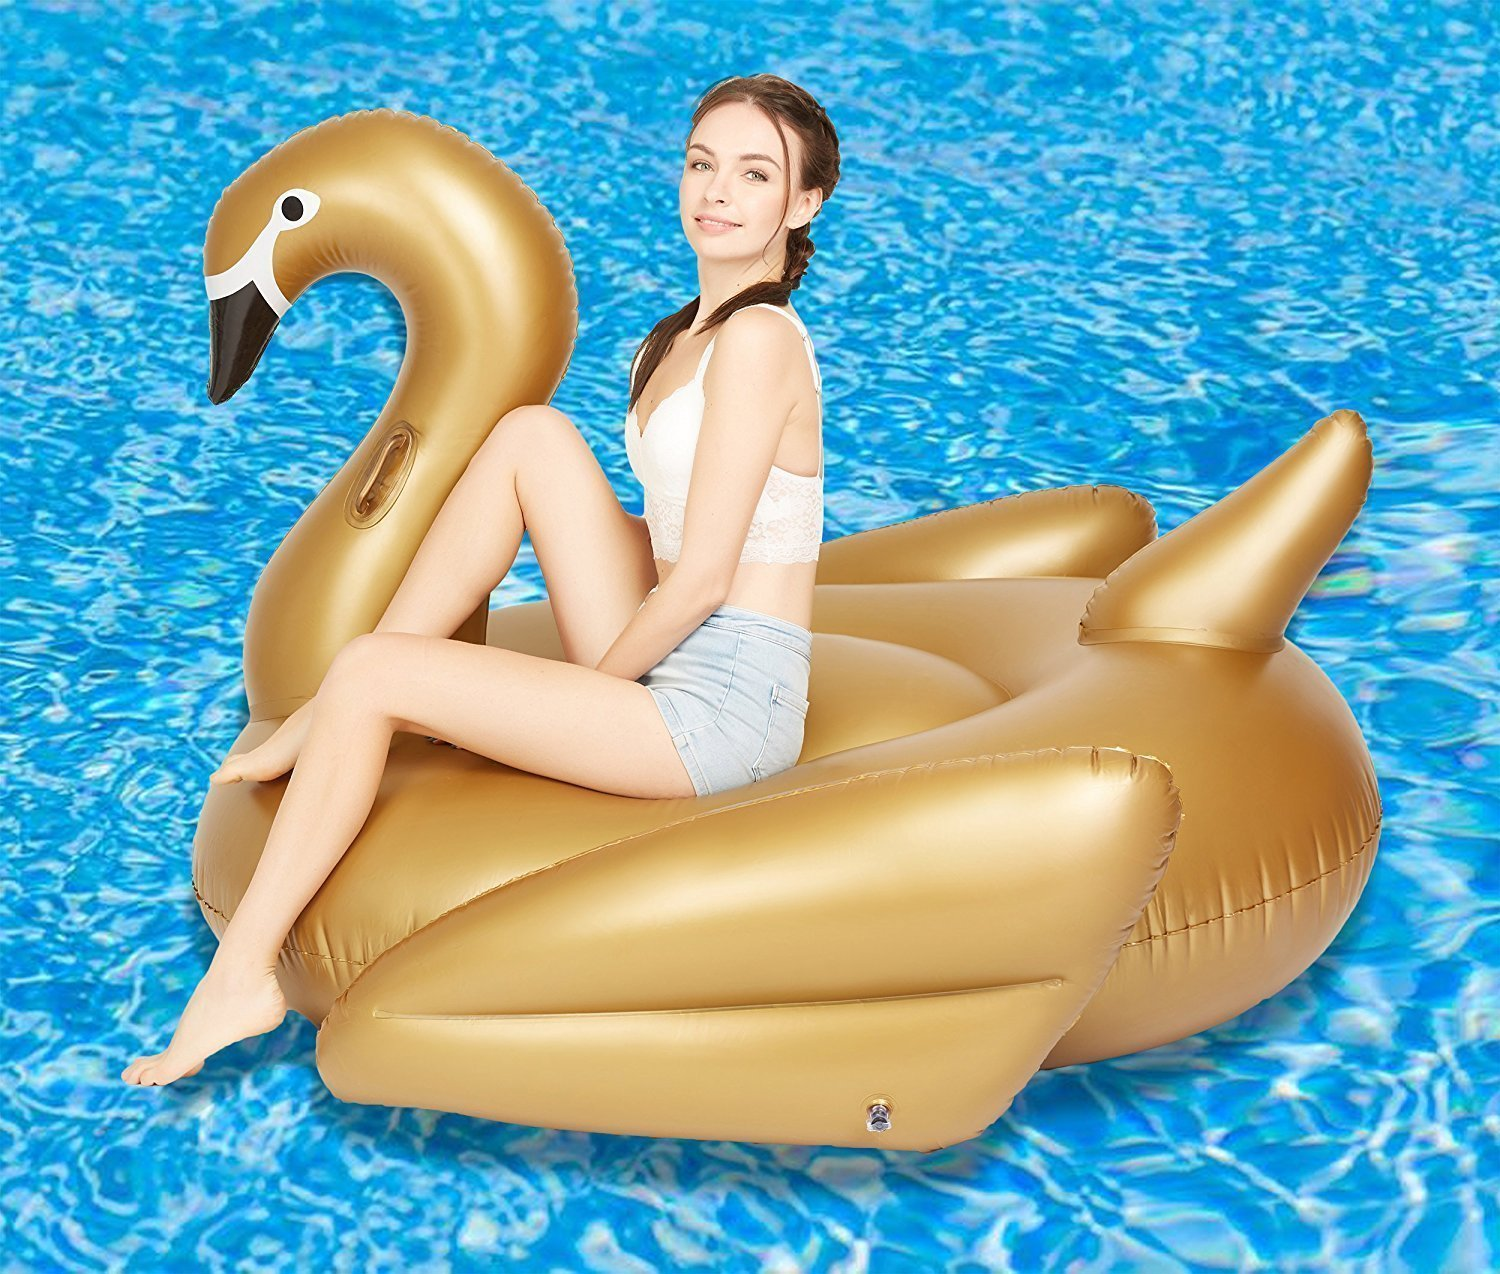 gold Swan, 190x190x125cm Woneart Giant Inflatable Flamingo Unicorn Pool Float Raft Summer Outdoor Swimming Water Pool Float Fun Toy Party Beach Floating Swim Ring for Adults Kids (gold Swan, 190x190x125CM)